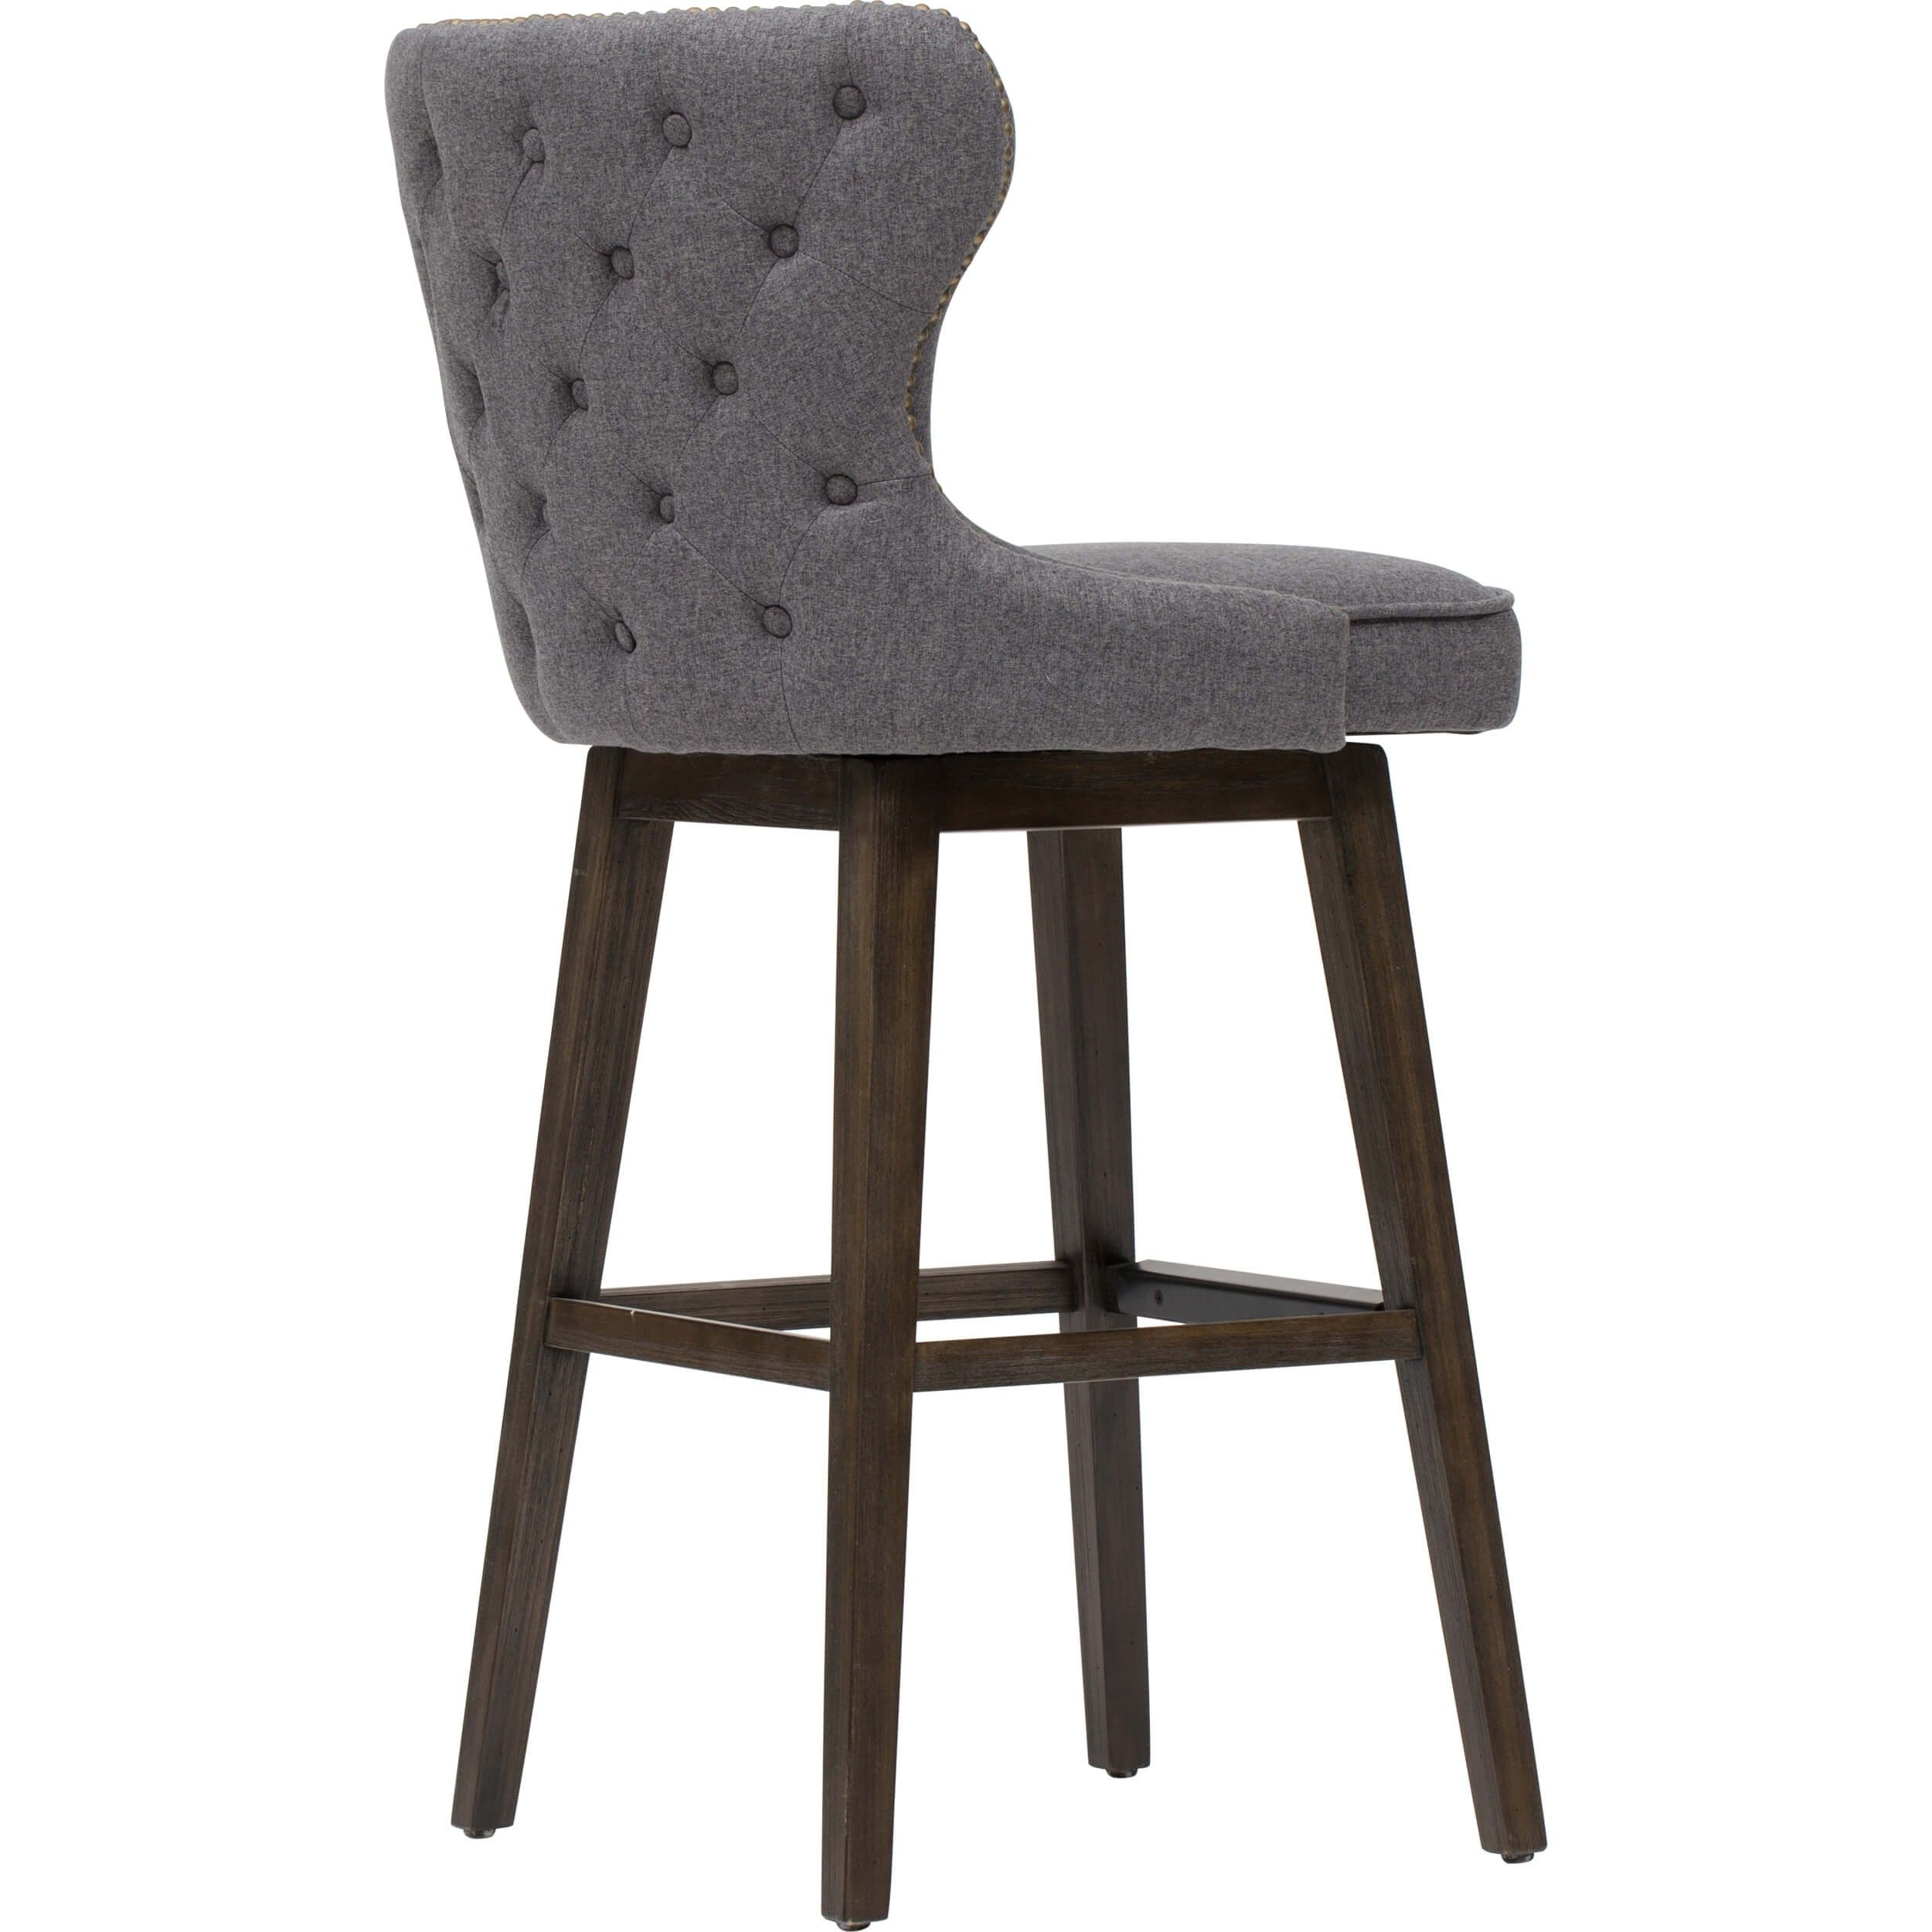 ariana swivel bar stool dark grey dining stools dining furniture basement pinterest. Black Bedroom Furniture Sets. Home Design Ideas